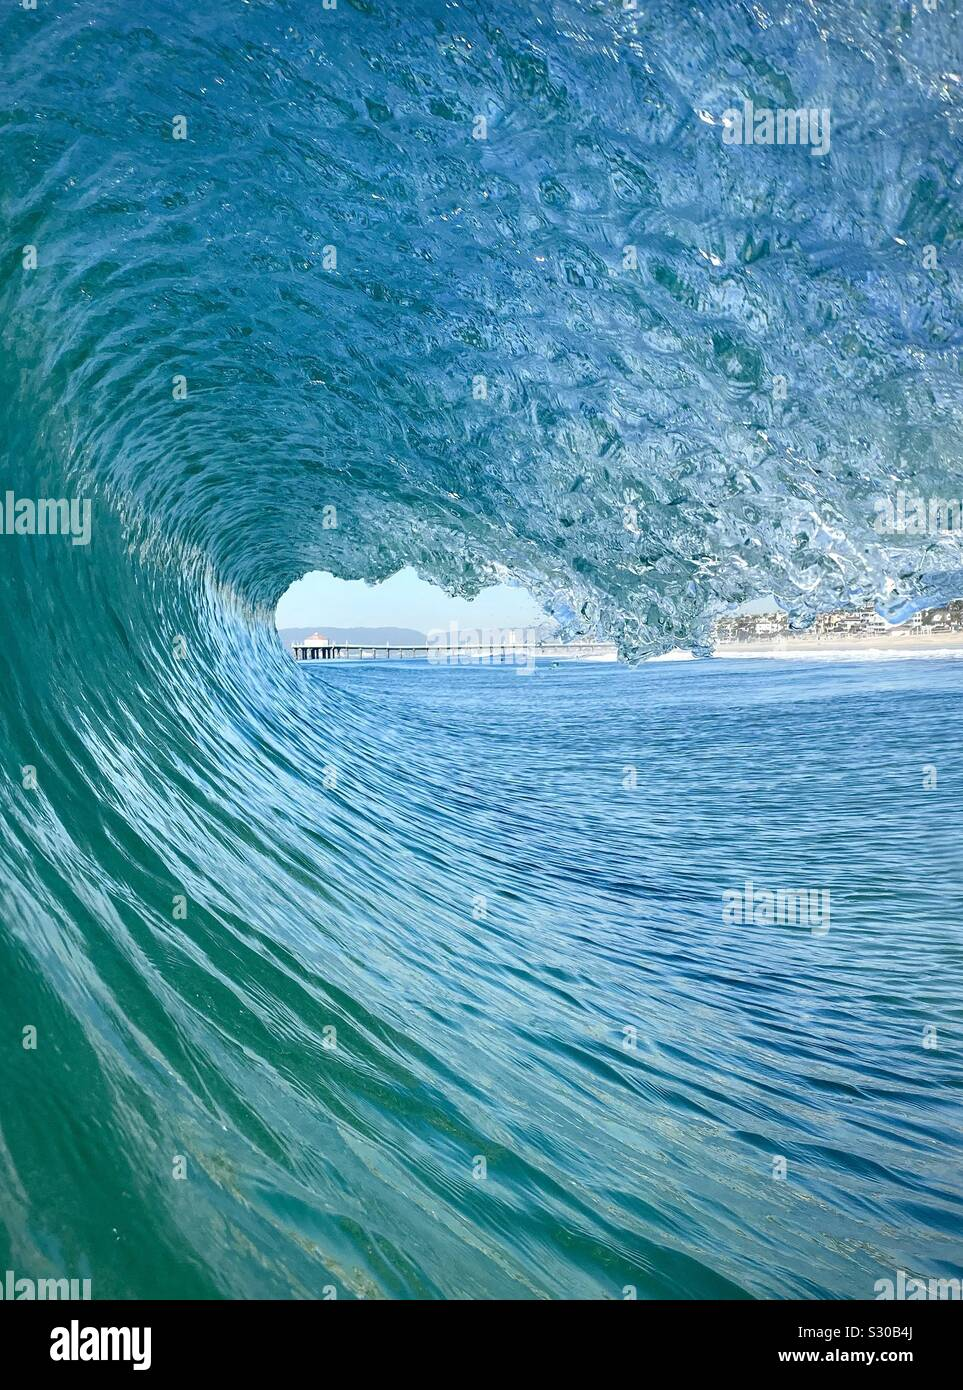 Inside, looking out of a barreling wave with Manhattan Beach pier in the background. Manhattan Beach, California USA Stock Photo